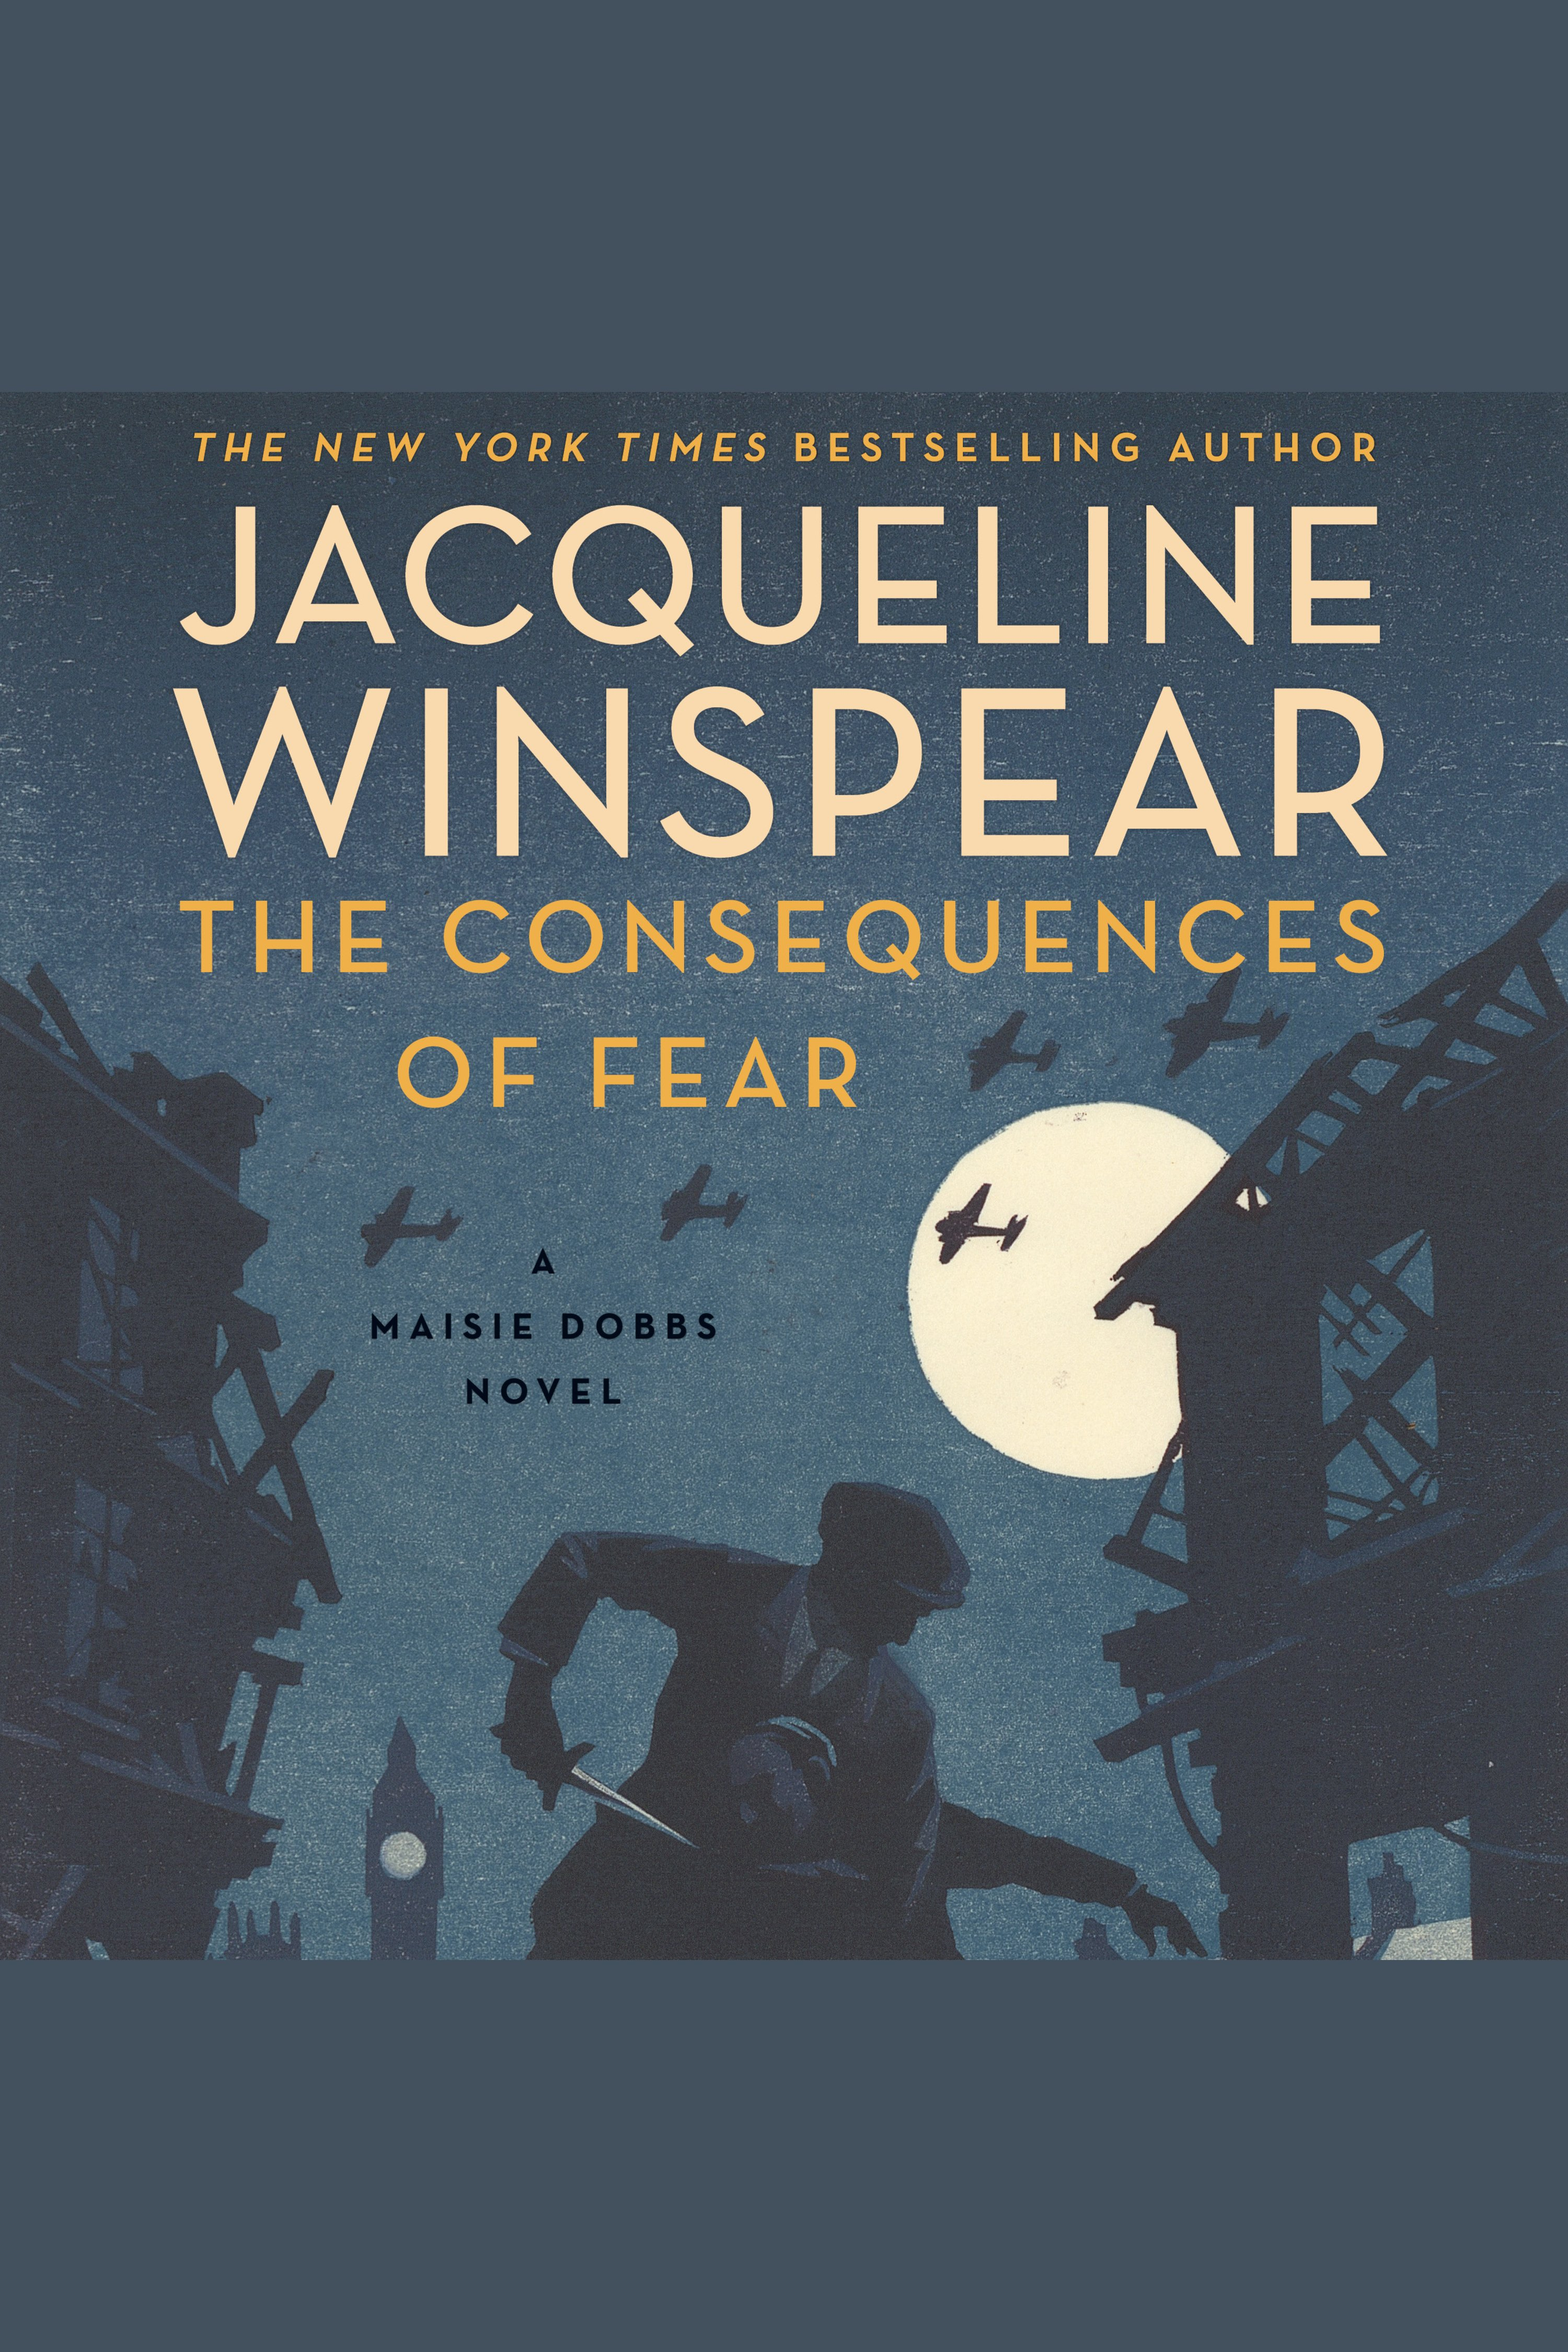 Consequences of Fear, The A Maisie Dobbs Novel